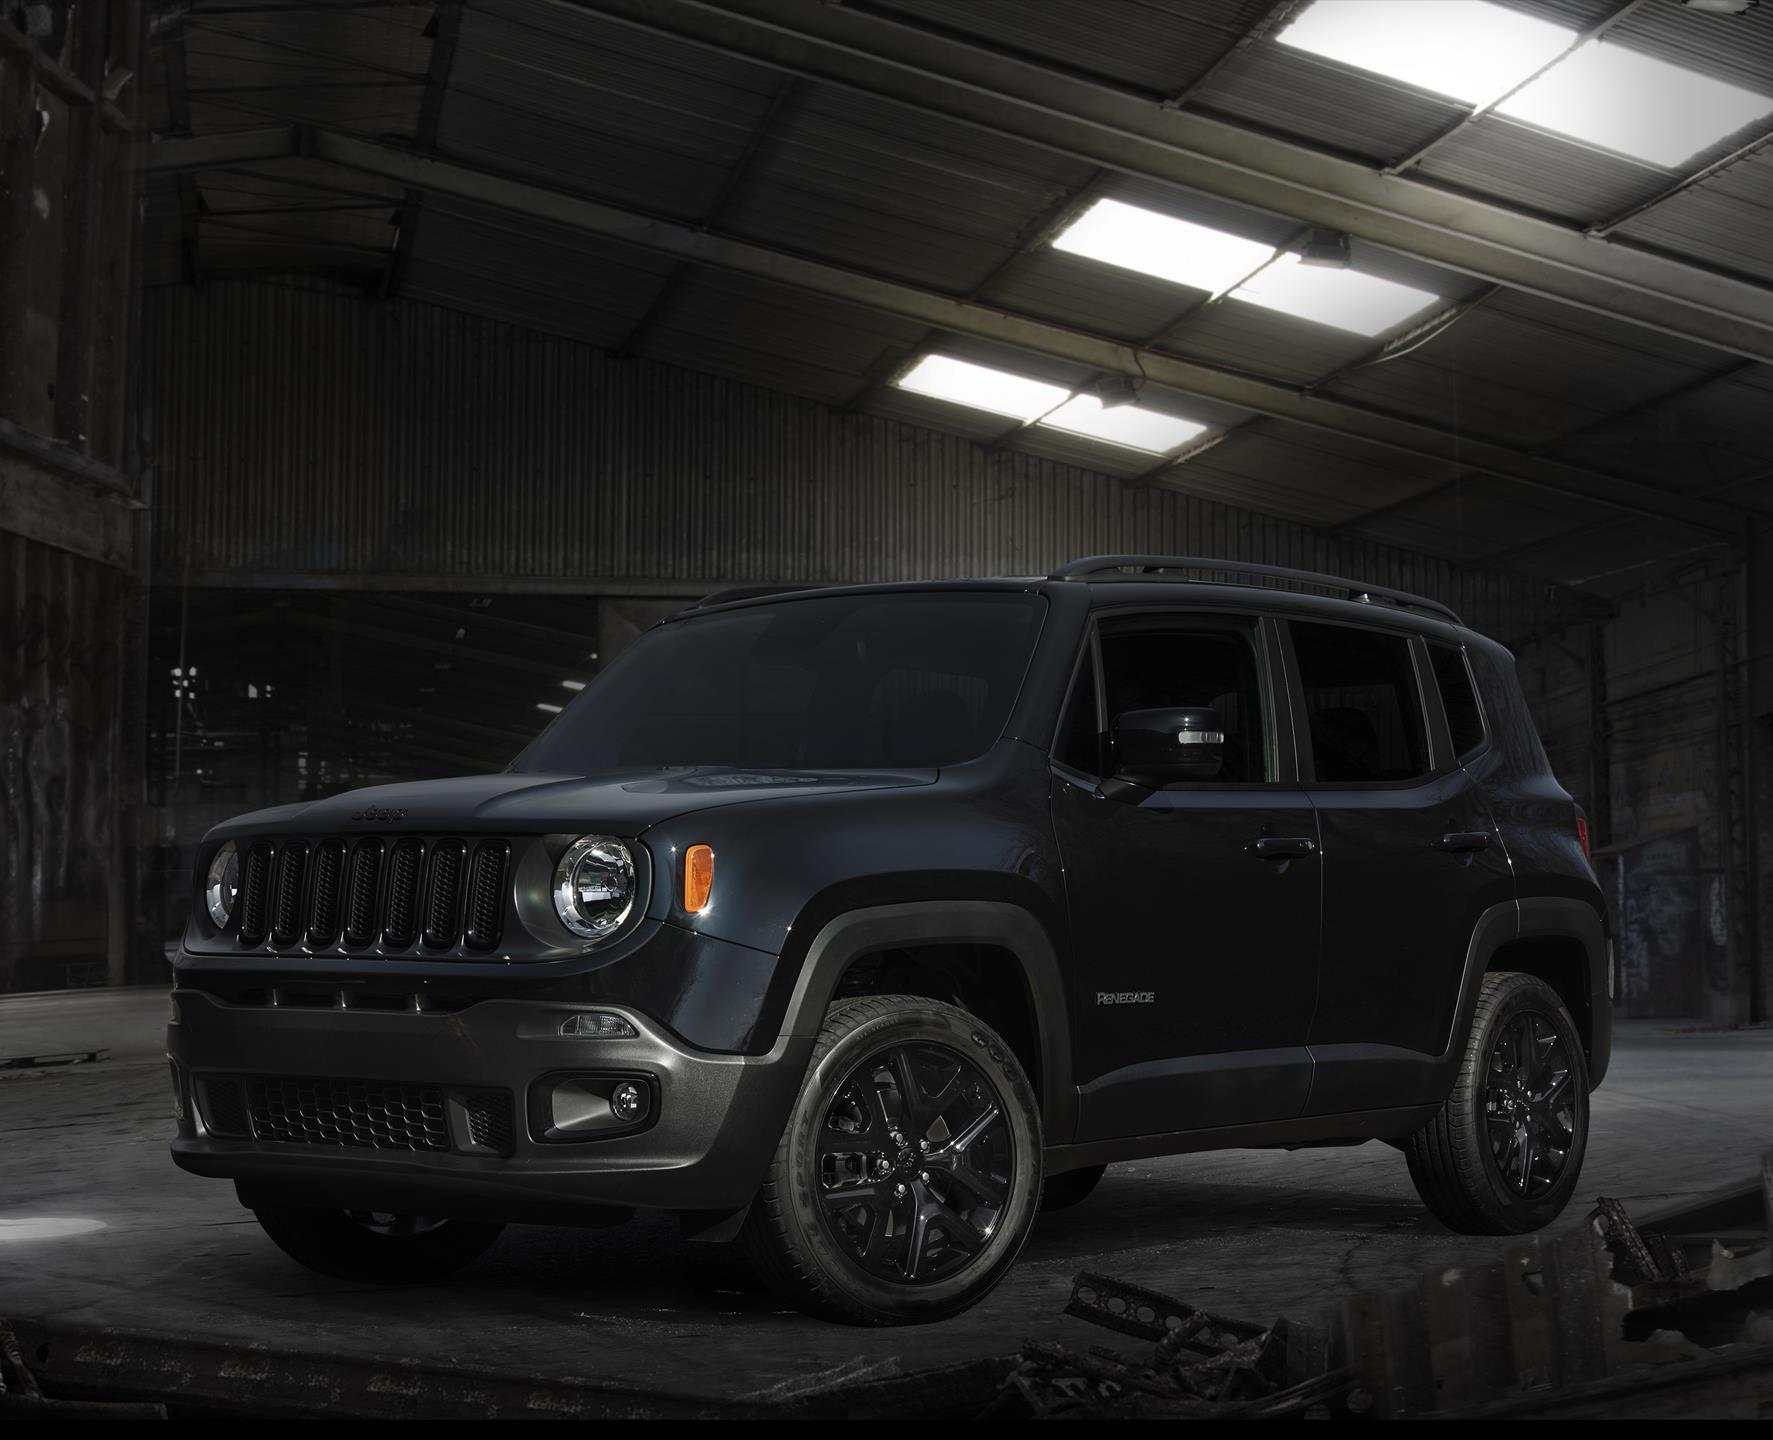 2016 Jeep Renegade Recalls >> 2016 Jeep Renegade Dawn of Justice Special Edition News and Information